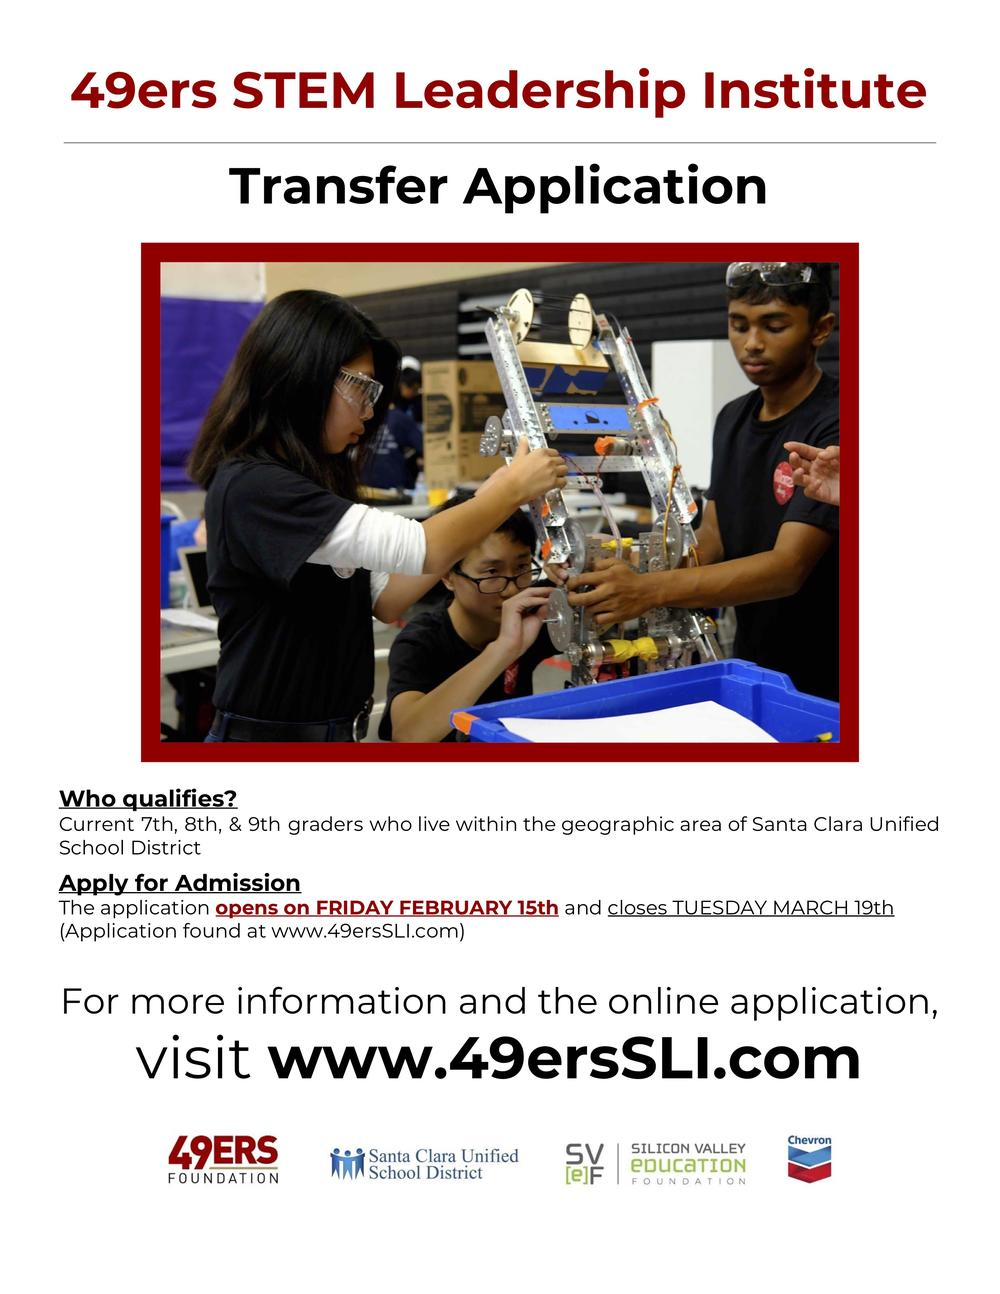 Transfer Application Flyer